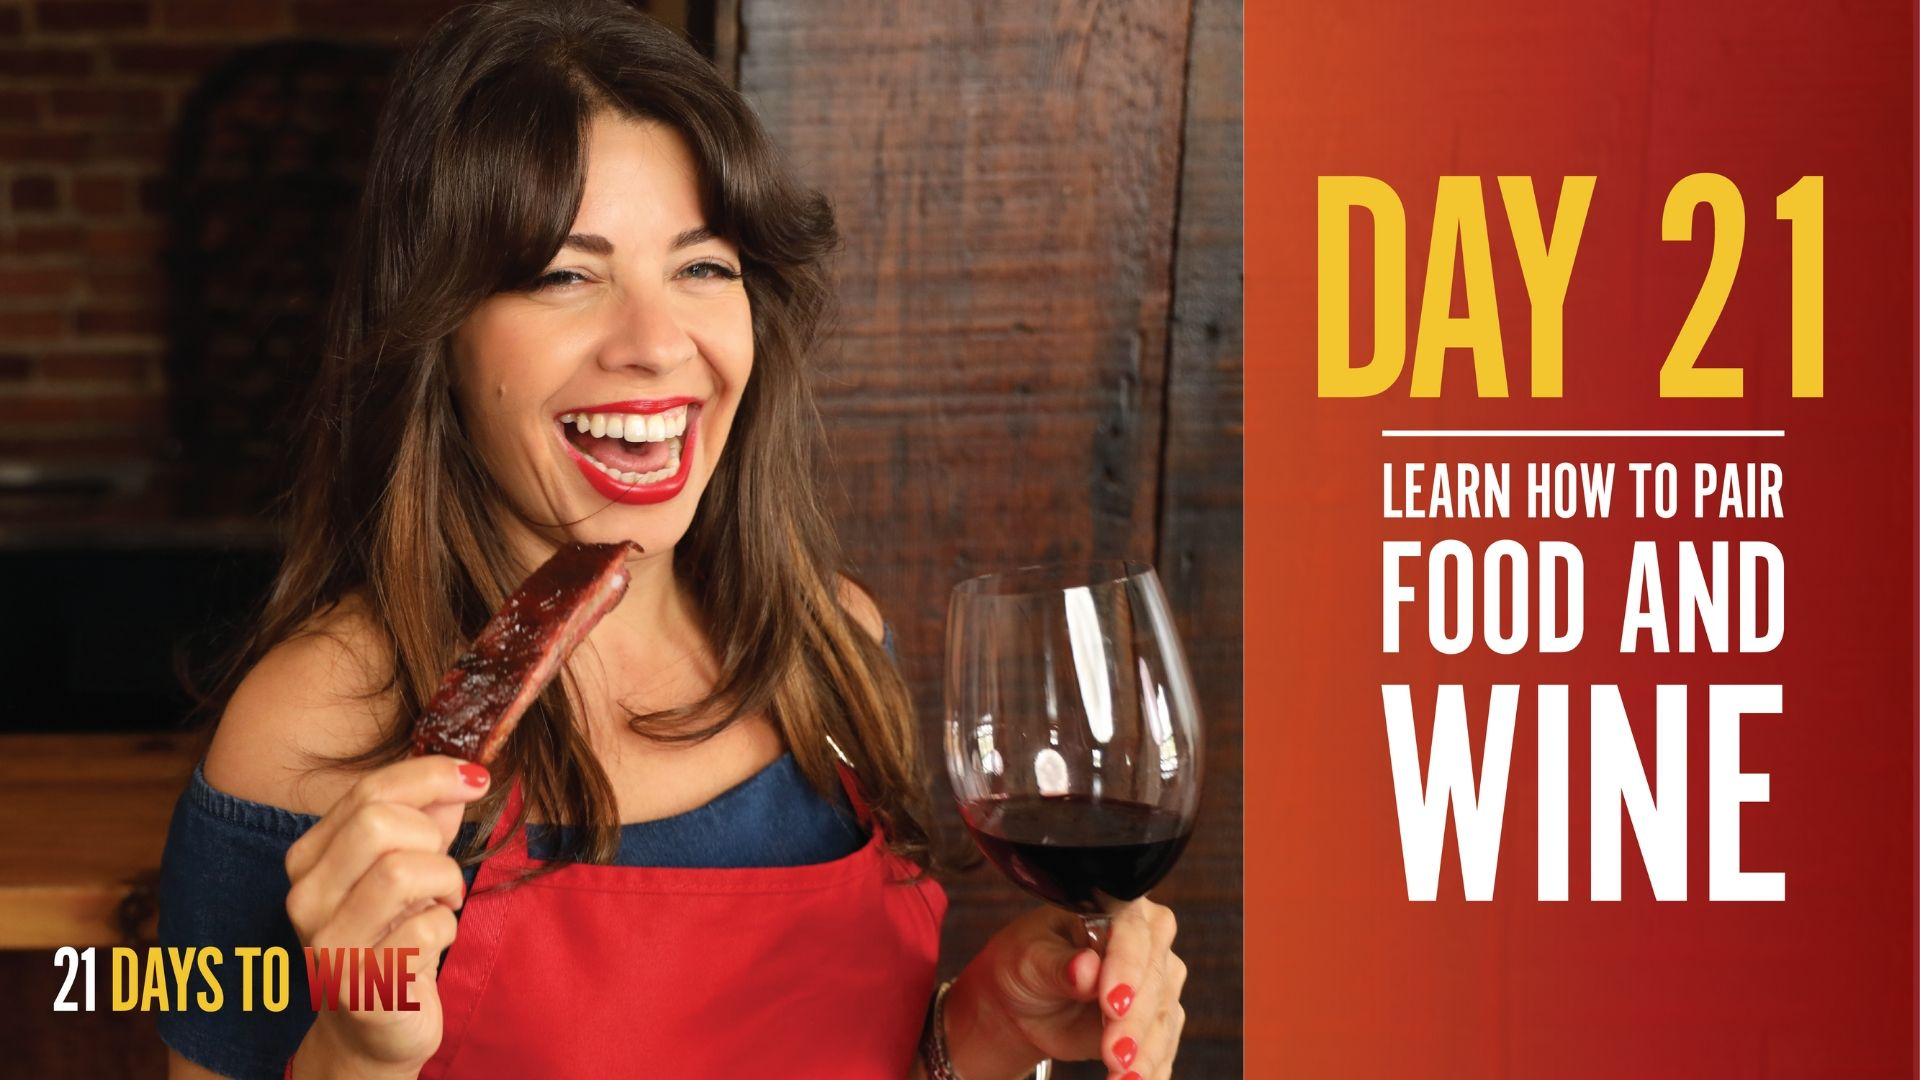 learn how to pair food and wine